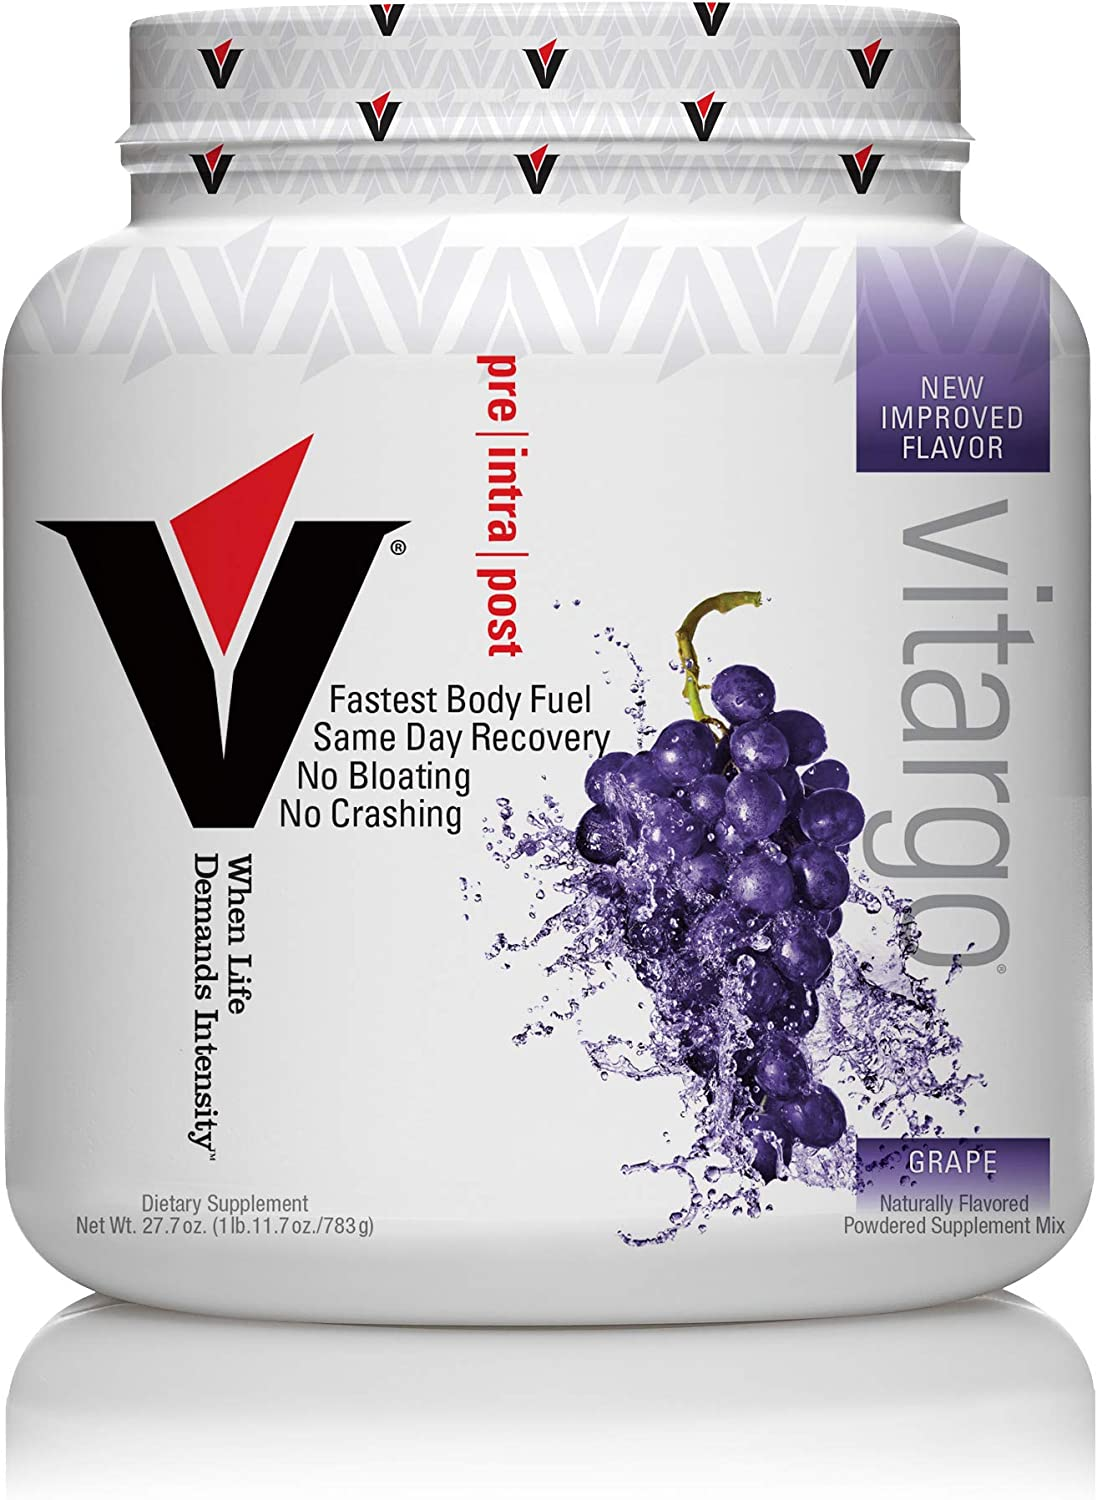 Vitargo Carbohydrate Powder | Feed Muscle Glycogen 2X Faster | 1 LB Grape Pre Workout & Post Workout | Carb Supplement for Recovery, Endurance, Gain Muscle Mass